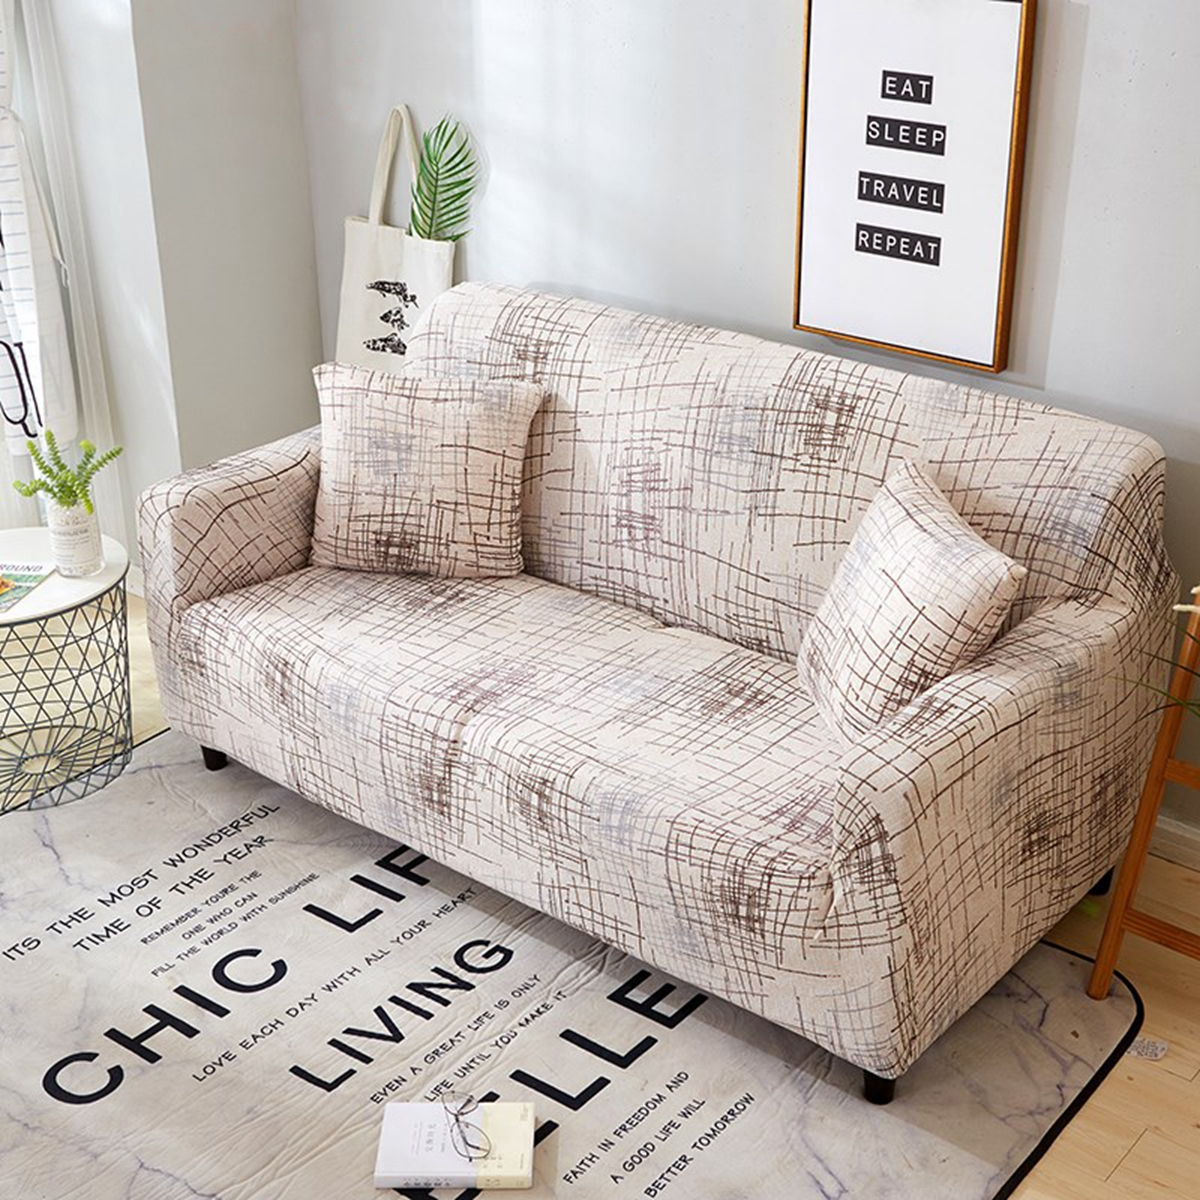 Enjoyable Details About Sofa Cover Slipcover 1 2 3 4 Recliner Pet Protector Sofa Cover Couch Covers Unemploymentrelief Wooden Chair Designs For Living Room Unemploymentrelieforg